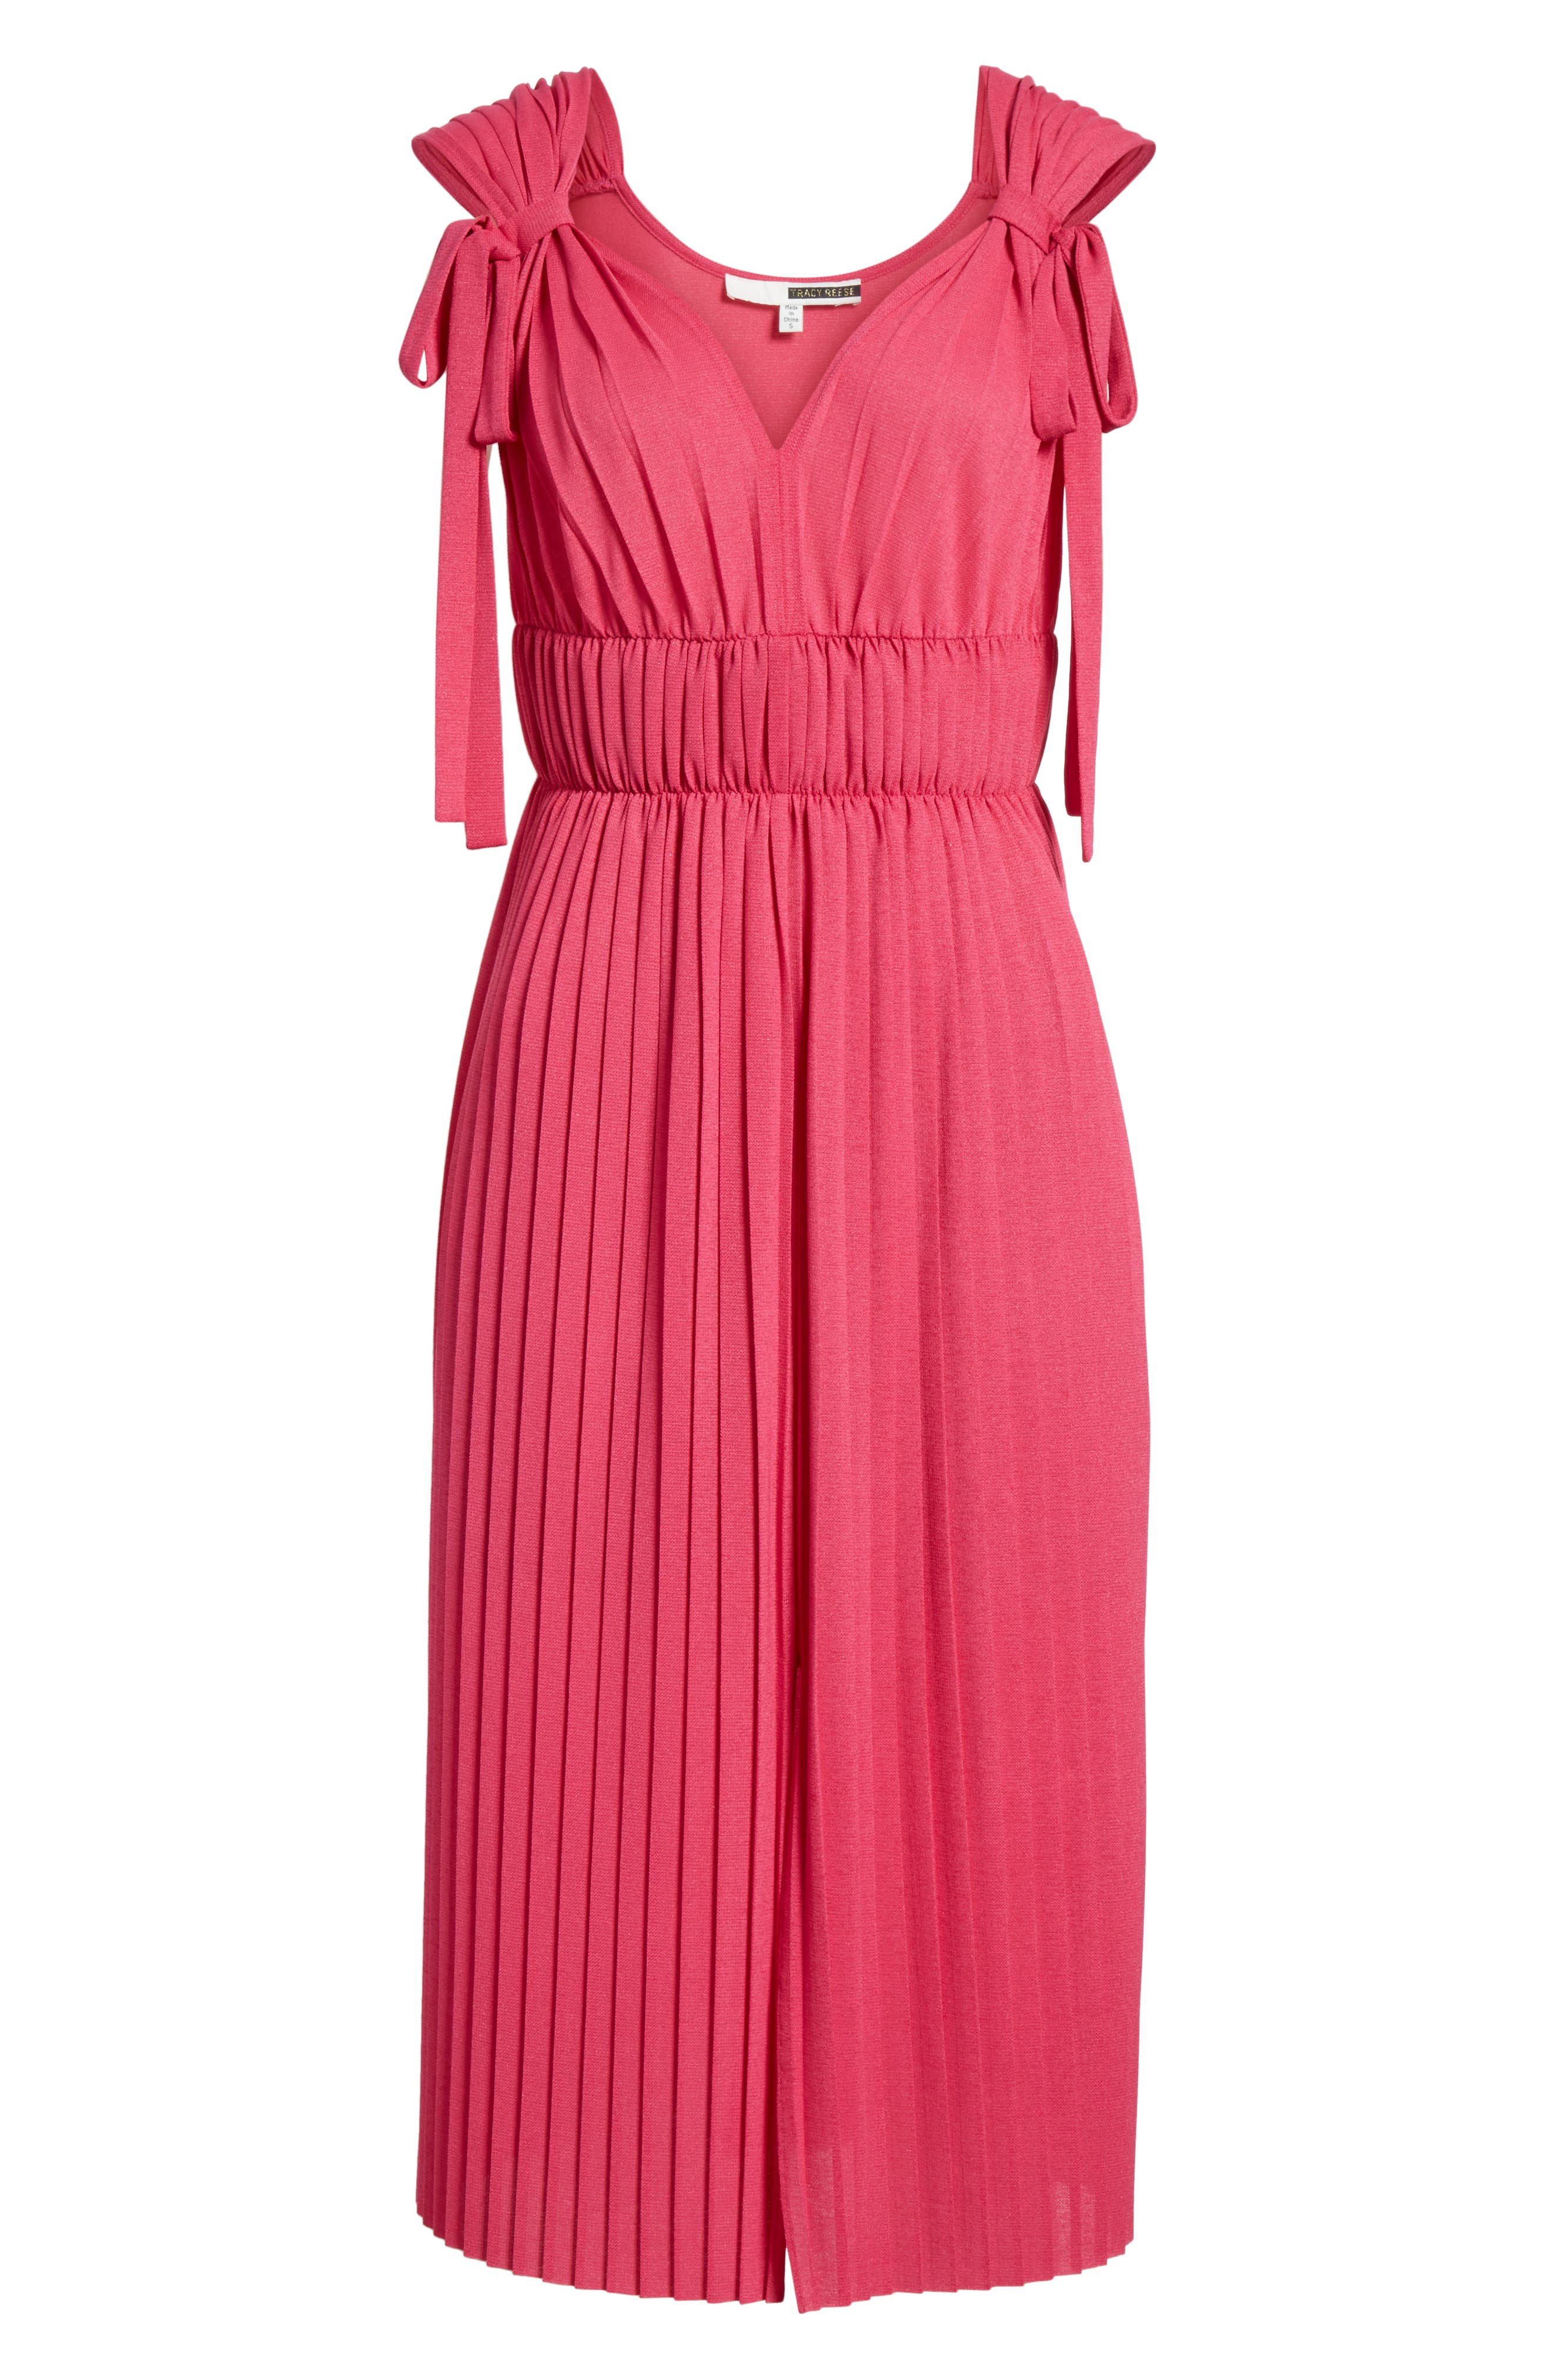 TRACY REESE,                             Grecian Pleat Dress,                             Alternate thumbnail 6, color,                             664